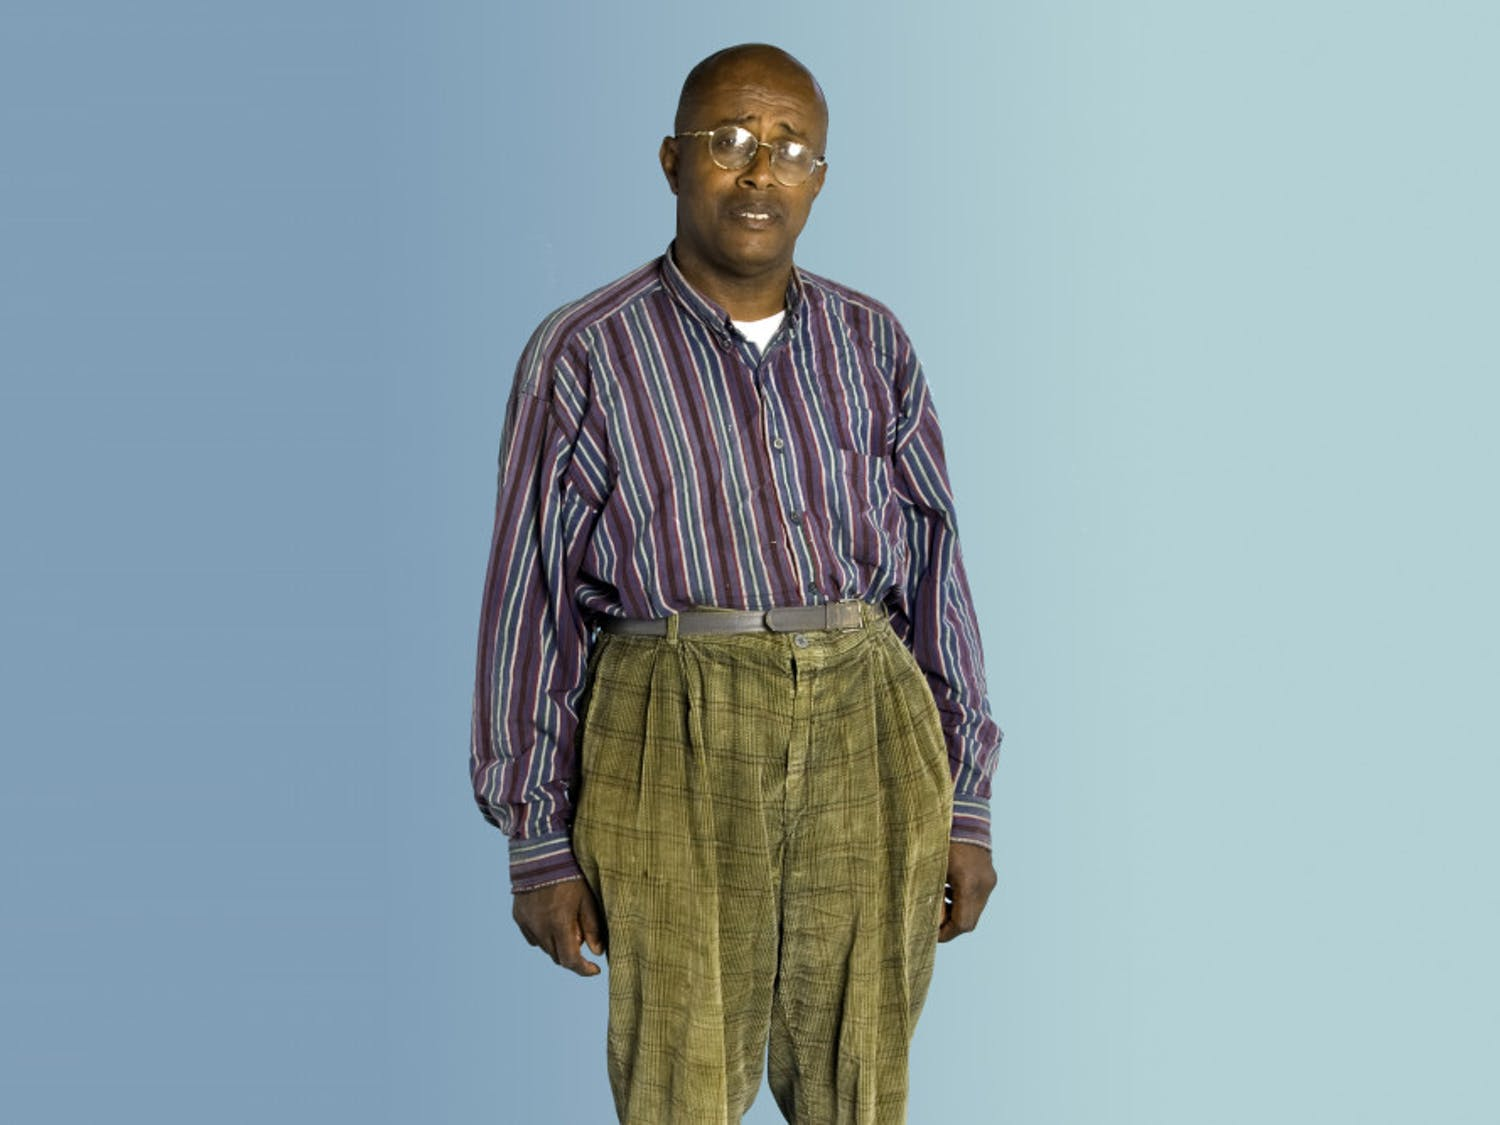 """David Liebe Hart, best known for his work on Adult Swim's """"Tim and Eric Awesome Show, Great Job!,"""" will be performing his comedy show at 9 p.m. Tuesday at High Dive."""